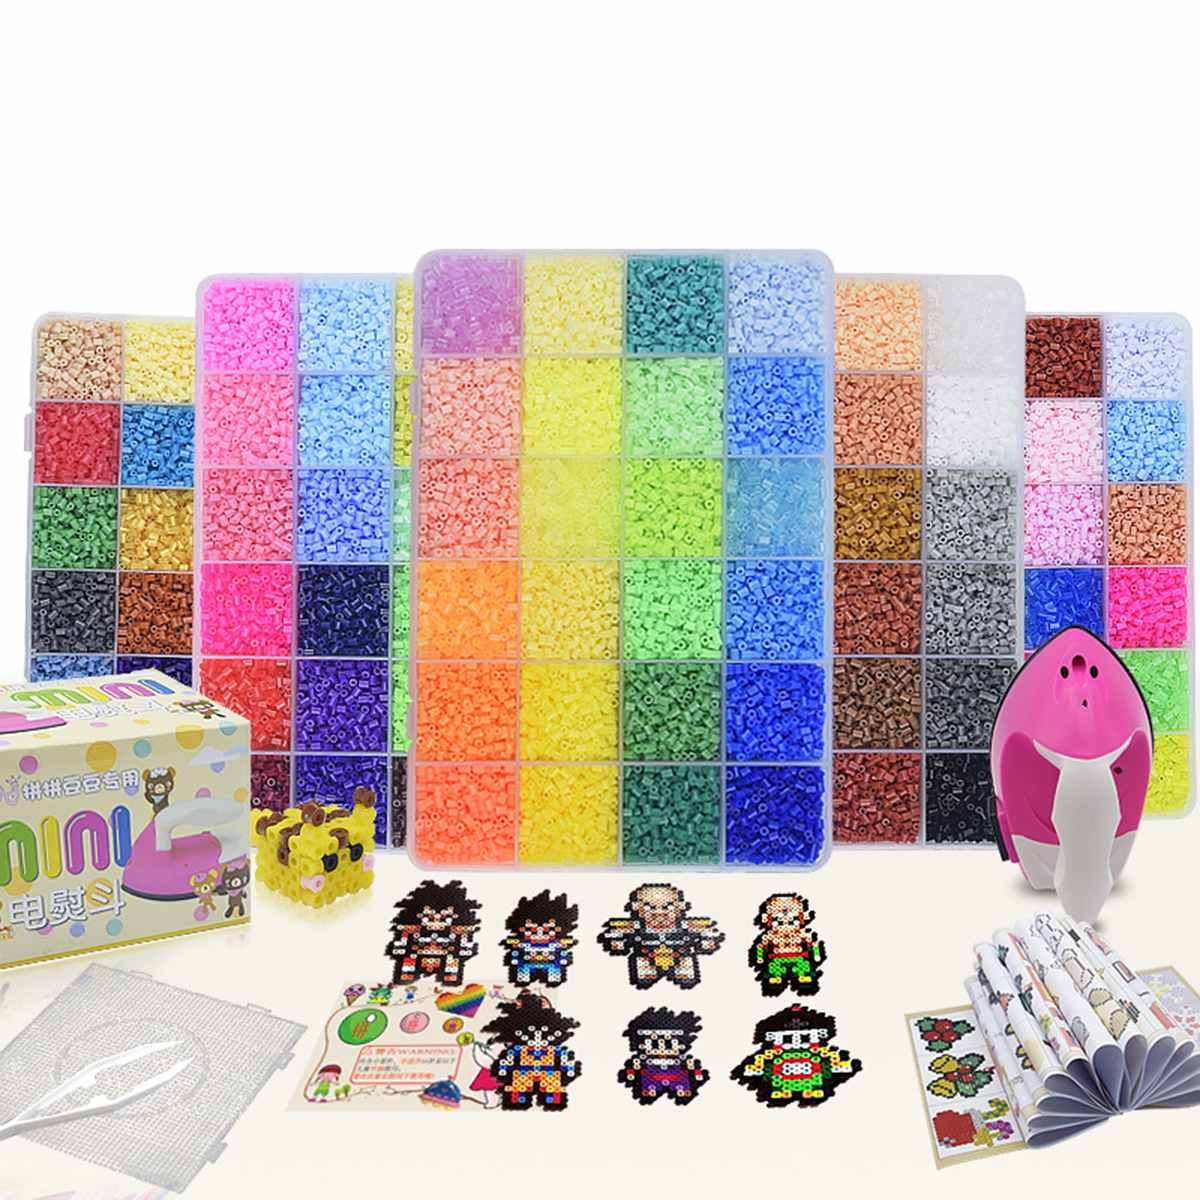 Perler Beads 1000pc Pack Bag Parrot Shipping Included parrot Green